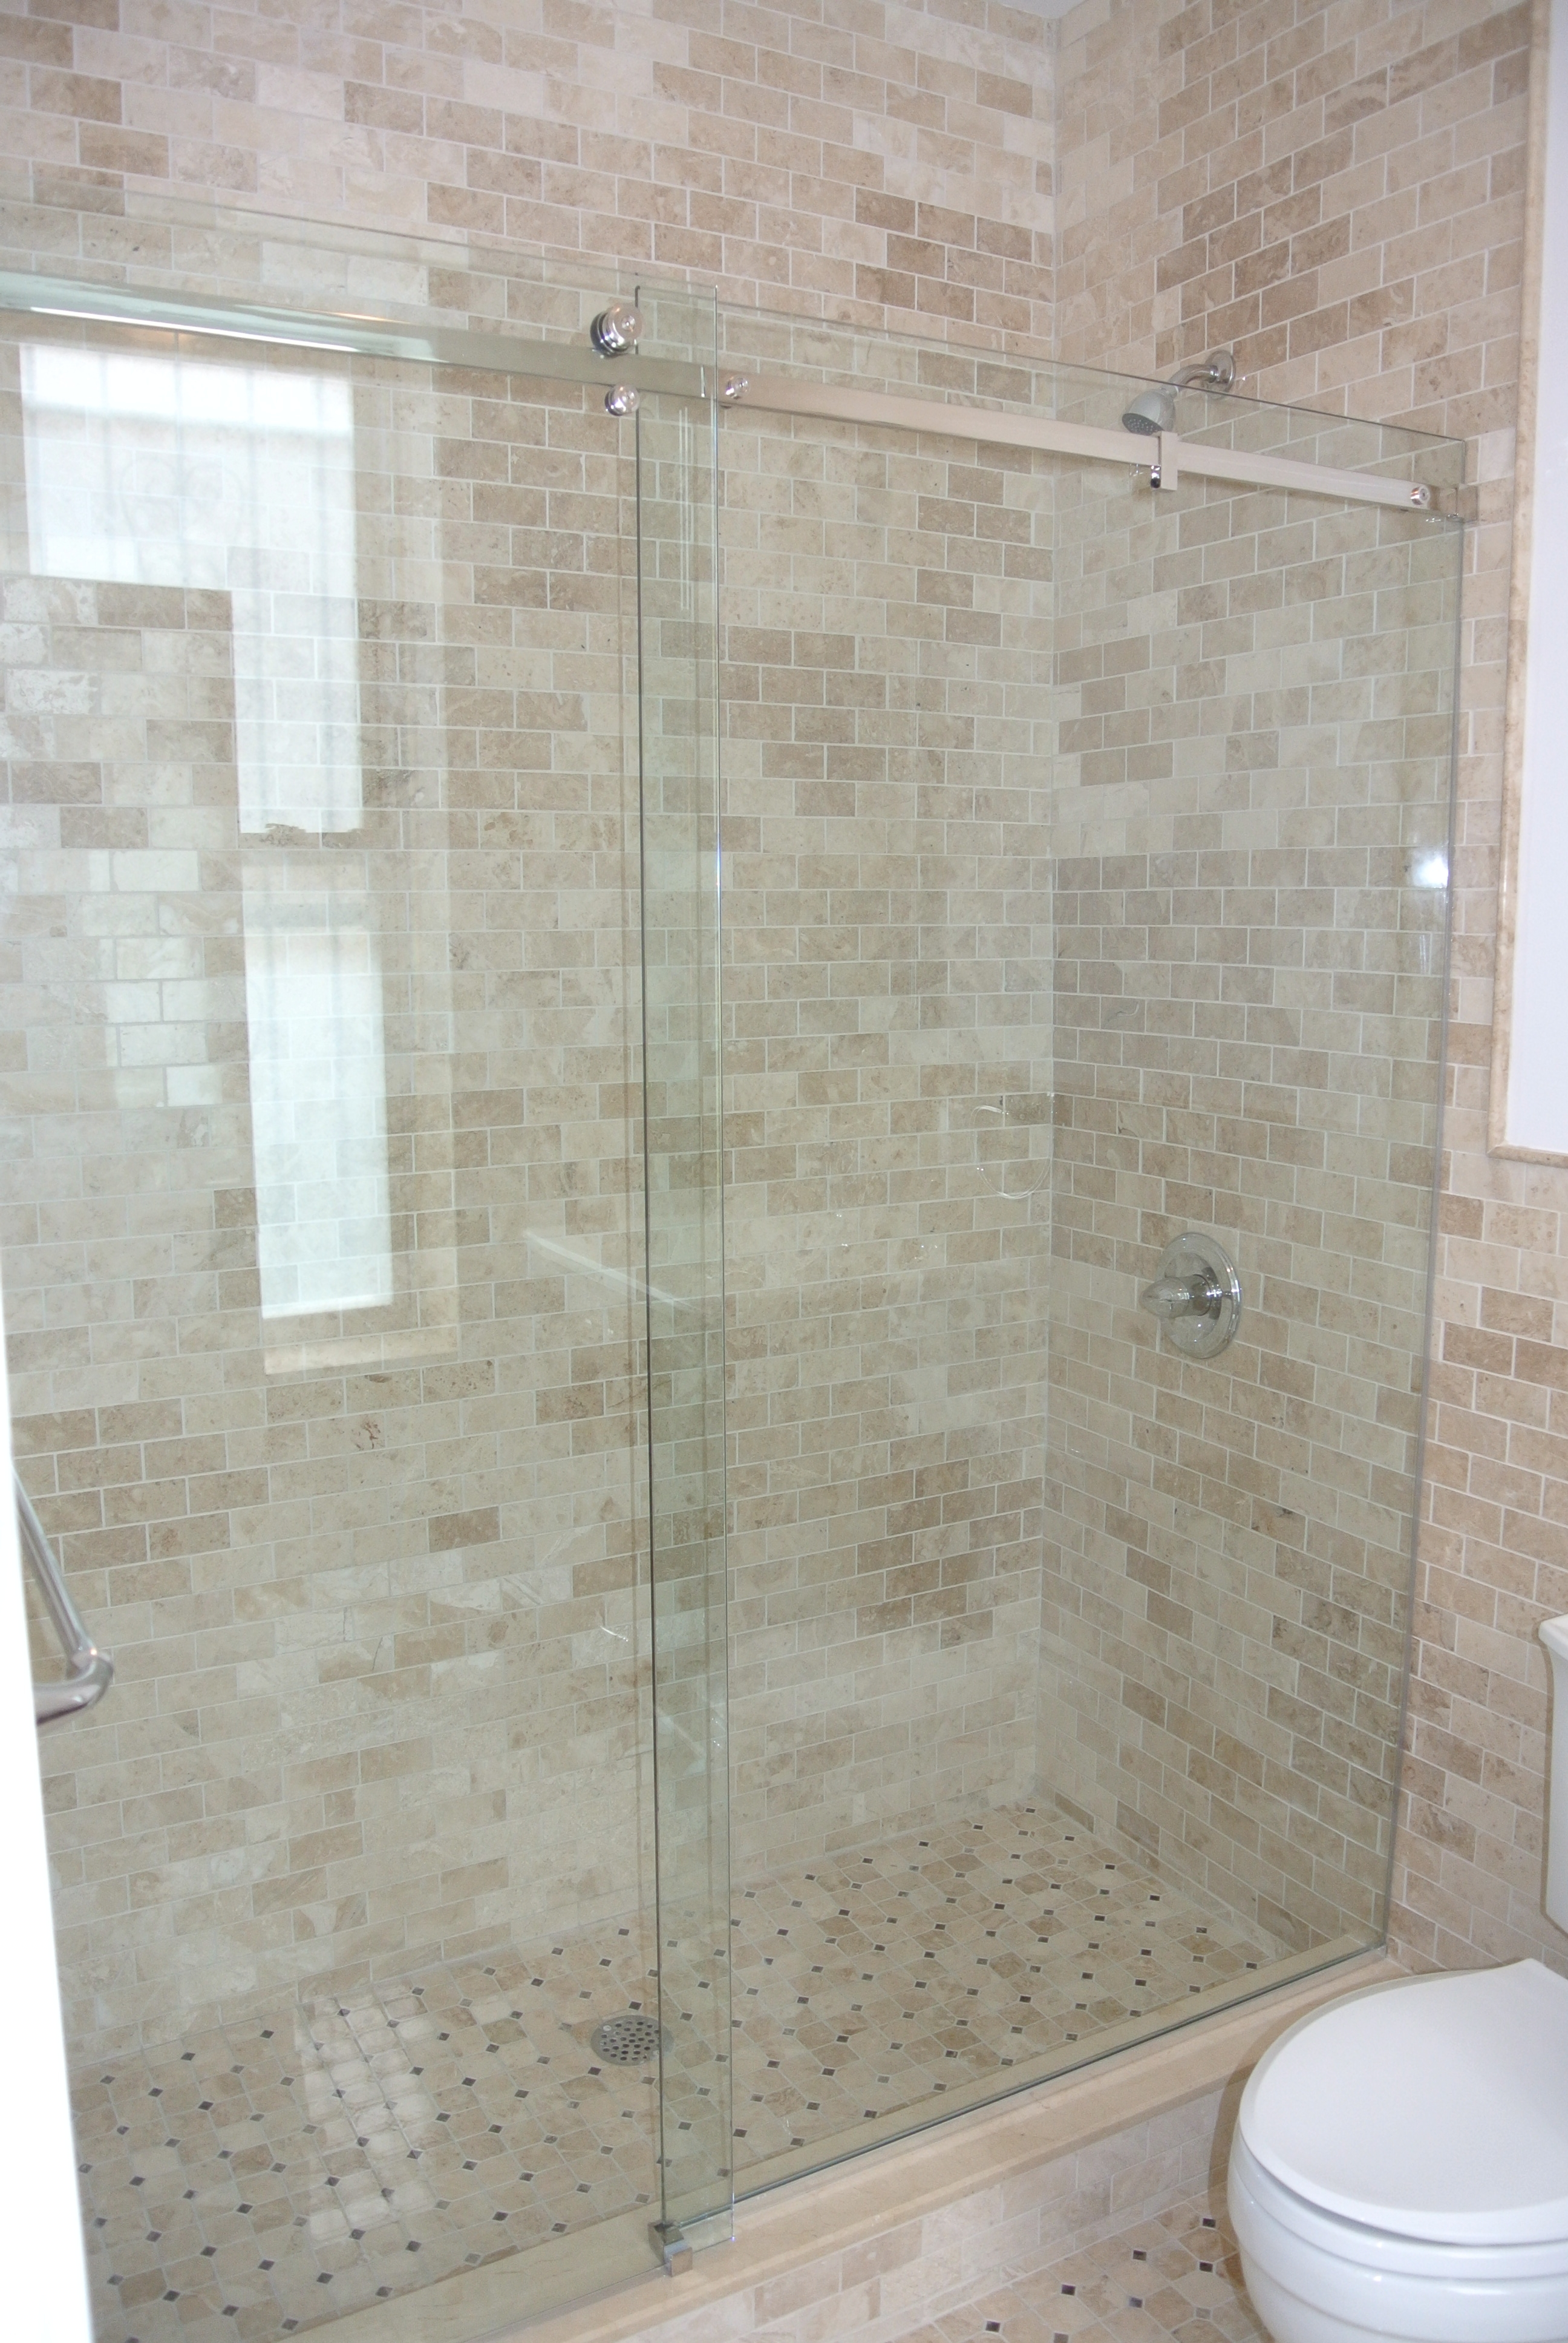 Shower Door Sliding Vs Hinged